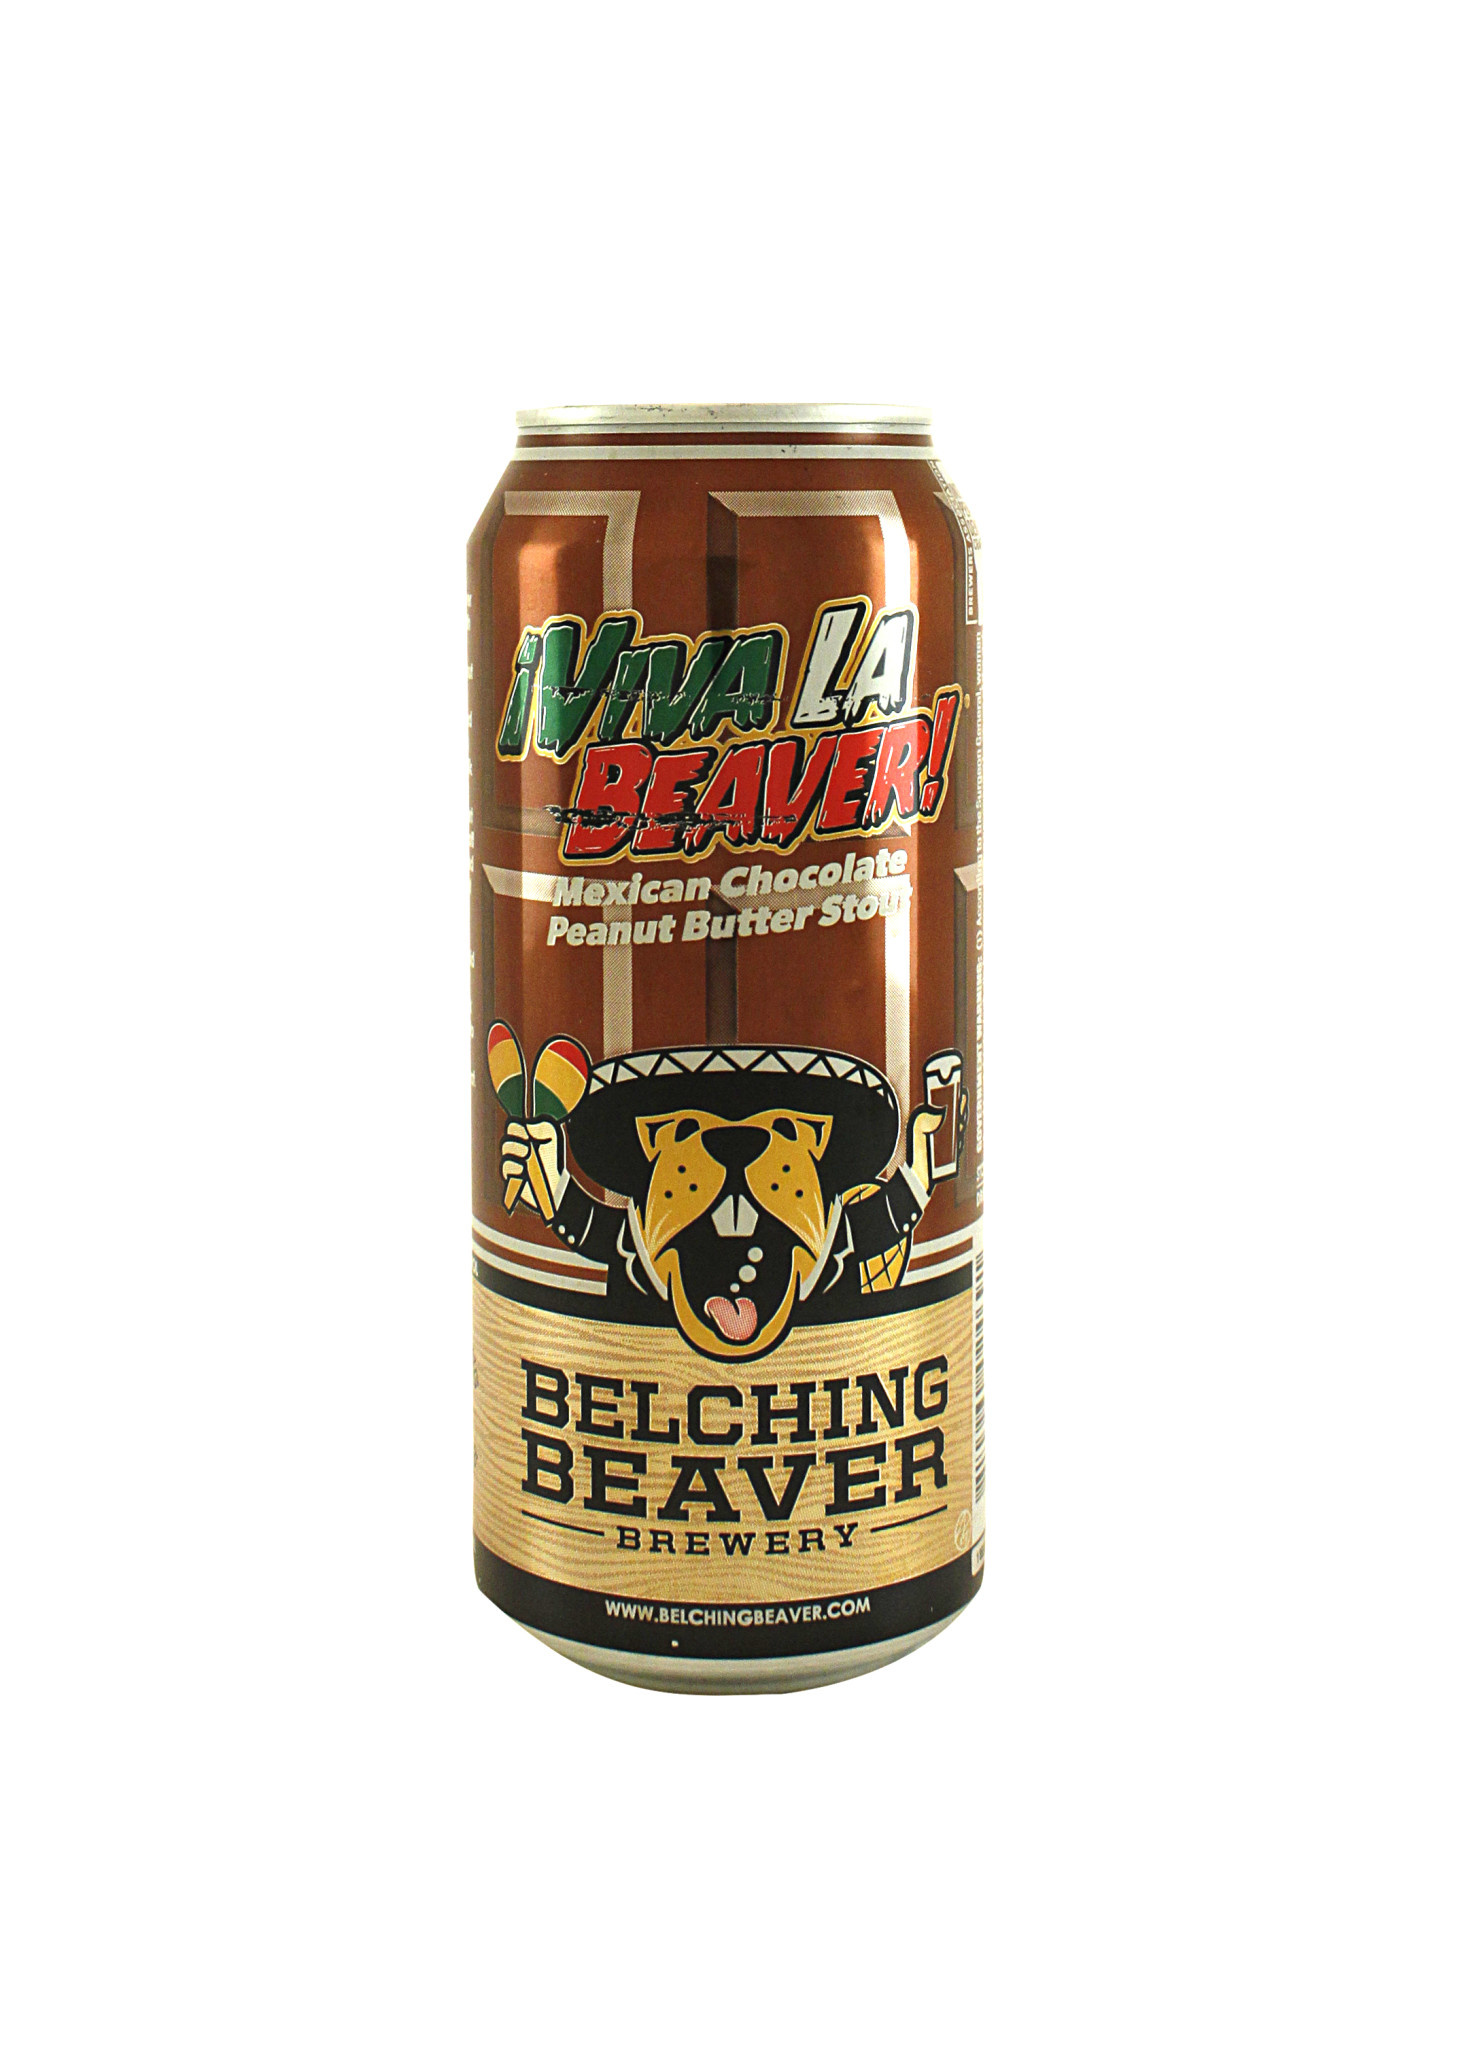 """Belching Beaver Brewery """"Viva La Beaver!"""" Mexican Chocolate Peanut Butter Stout 16oz. Can - Oceanside, CA"""